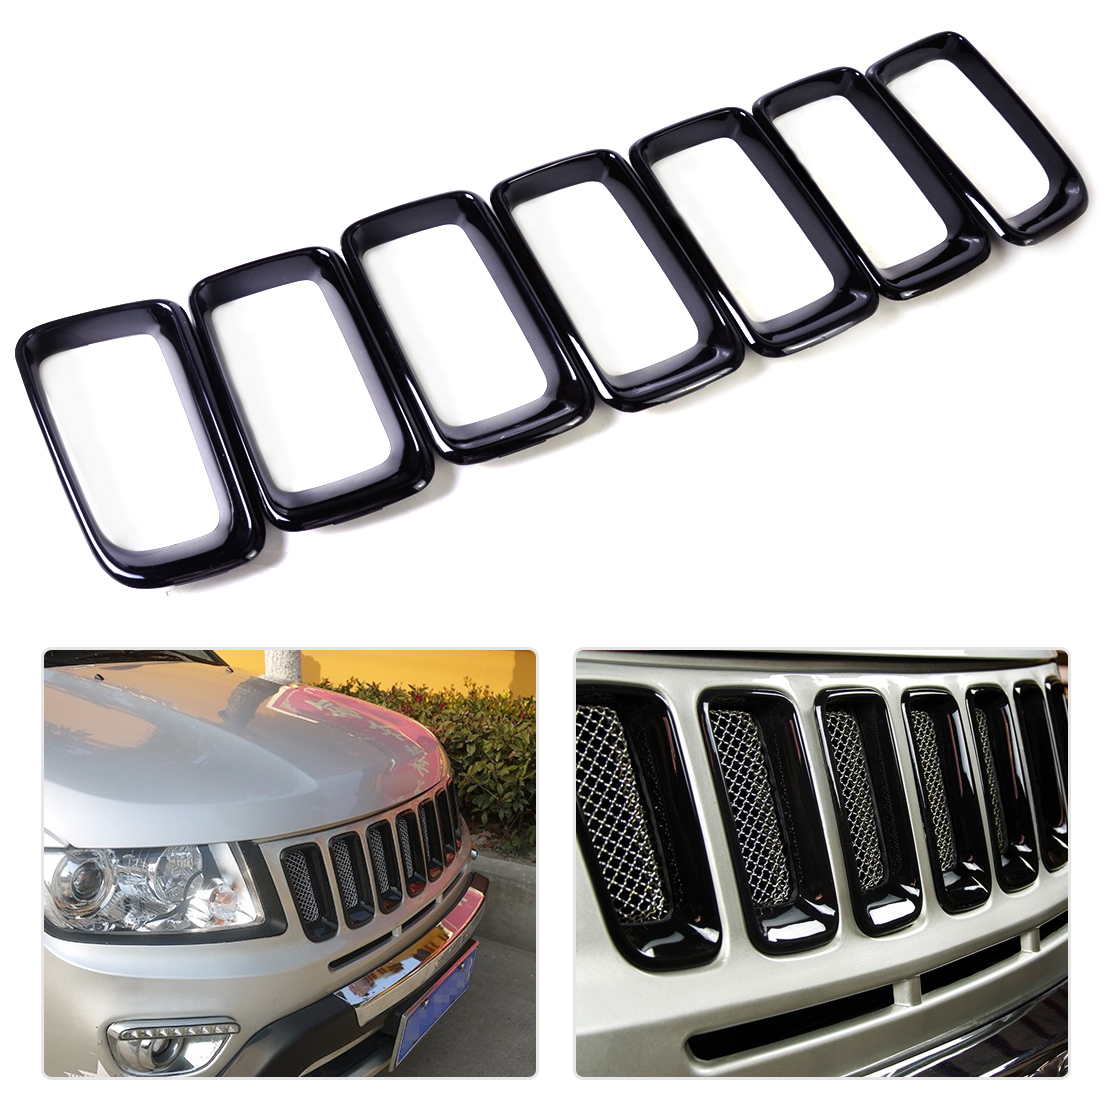 DWCX 7pcs/Lot Black Front Center Grille Vent Outlet Hole Cover Trim Net Frame Fit for Jeep Compass 2011 2012 2013 2014 2015 2016 abs chrome front grille around trim for ford s max smax 2007 2010 2011 2012